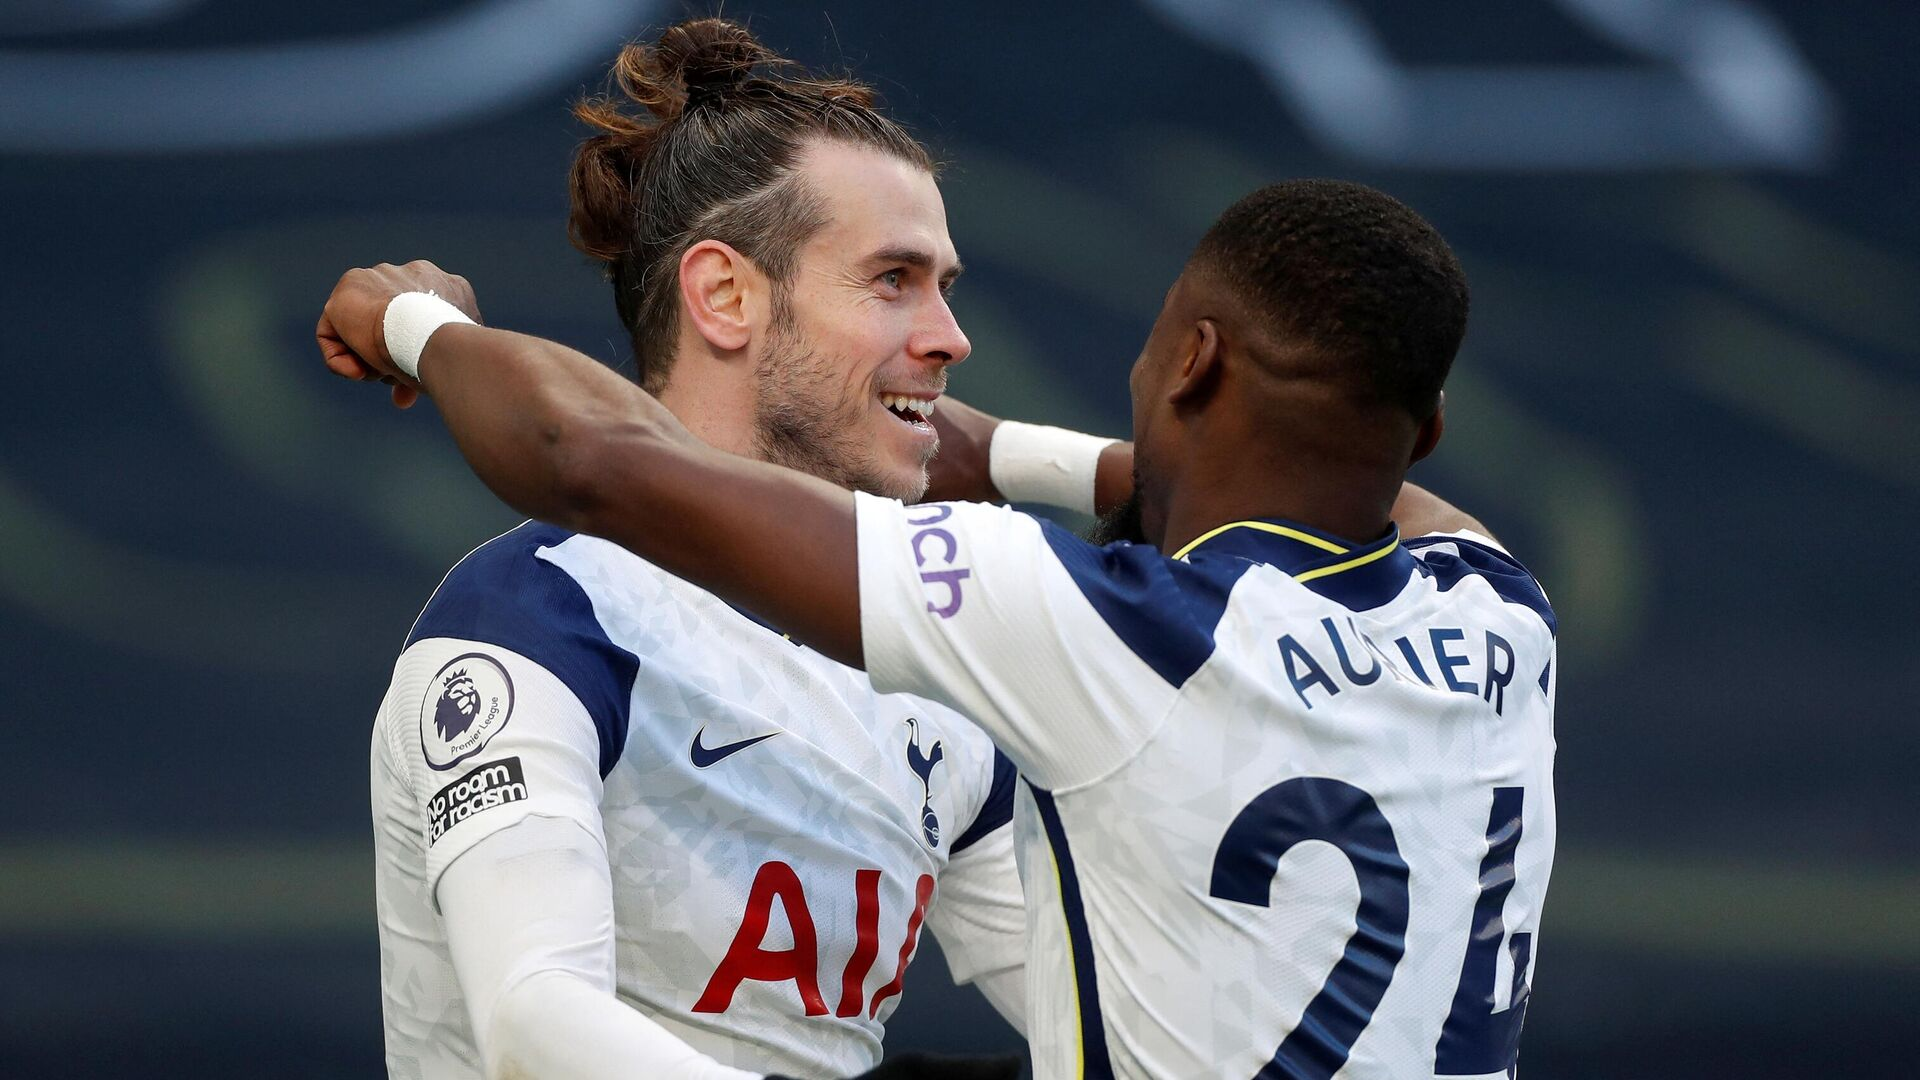 Tottenham Hotspur's Welsh striker Gareth Bale (L) celebrates scoring his team's fourth goal, his second, with Tottenham Hotspur's Ivorian defender Serge Aurier during the English Premier League football match between Tottenham Hotspur and Burnley at Tottenham Hotspur Stadium in London, on February 28, 2021. (Photo by MATTHEW CHILDS / POOL / AFP) / RESTRICTED TO EDITORIAL USE. No use with unauthorized audio, video, data, fixture lists, club/league logos or 'live' services. Online in-match use limited to 120 images. An additional 40 images may be used in extra time. No video emulation. Social media in-match use limited to 120 images. An additional 40 images may be used in extra time. No use in betting publications, games or single club/league/player publications. /  - РИА Новости, 1920, 28.02.2021